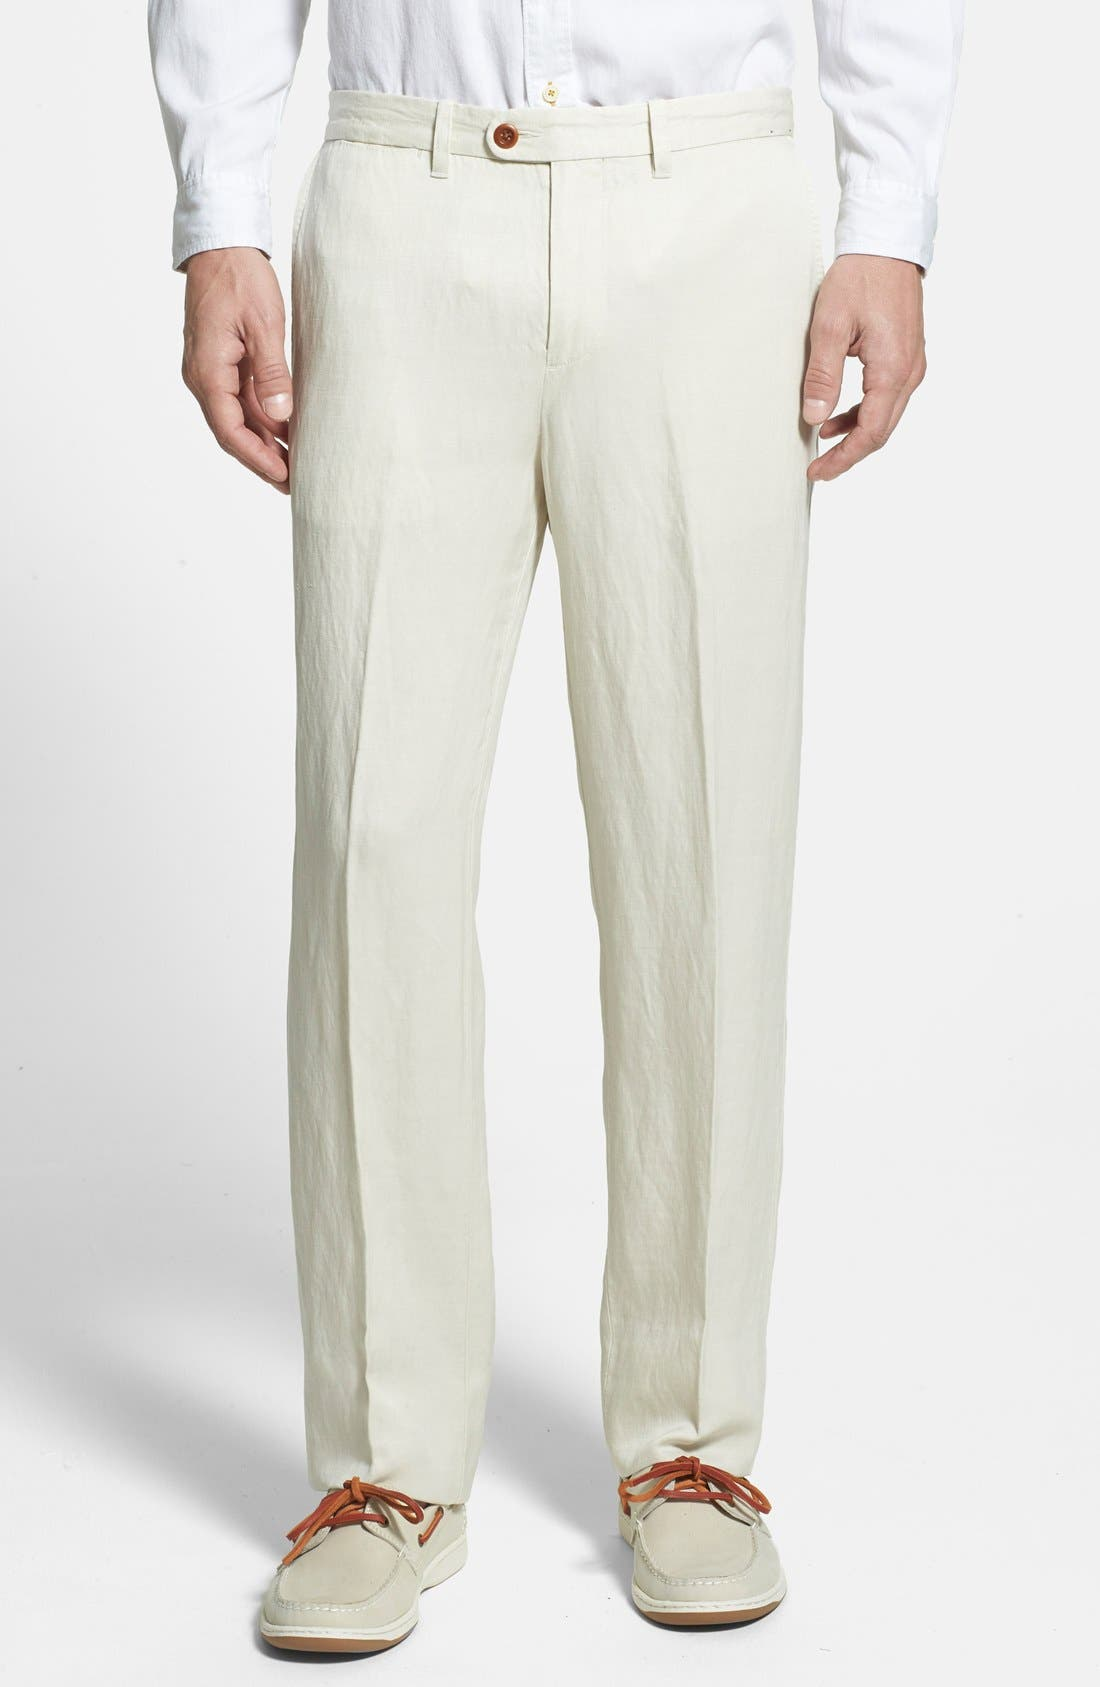 'La Jolla' Flat Front Pants,                         Main,                         color, Warm Sand Beige